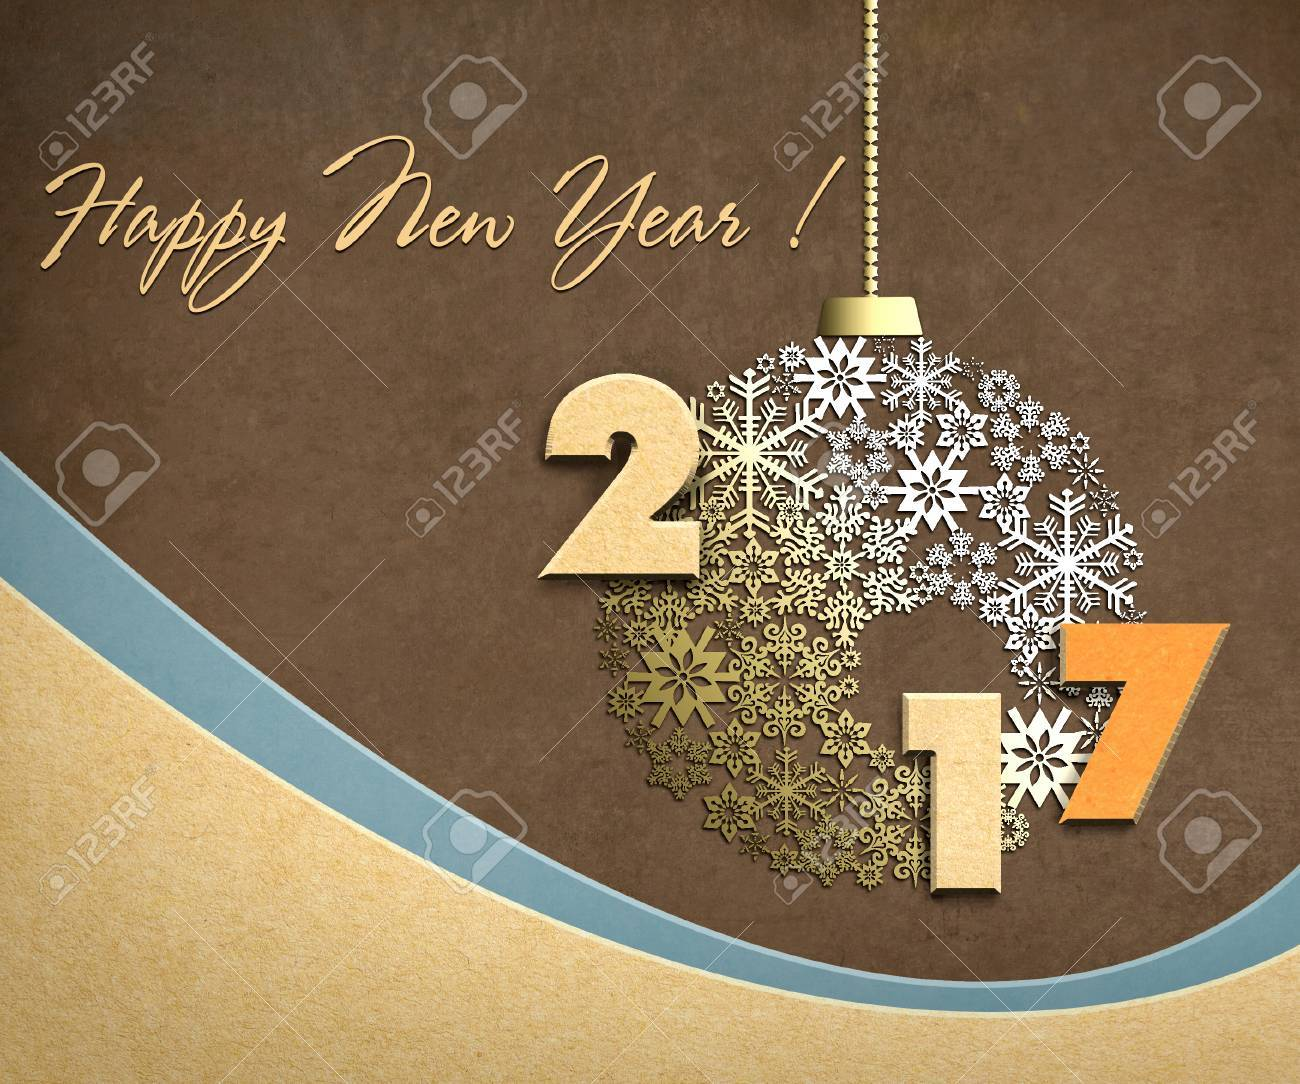 Happy new year 2017 creative design background with paper cuttings. - 62797144